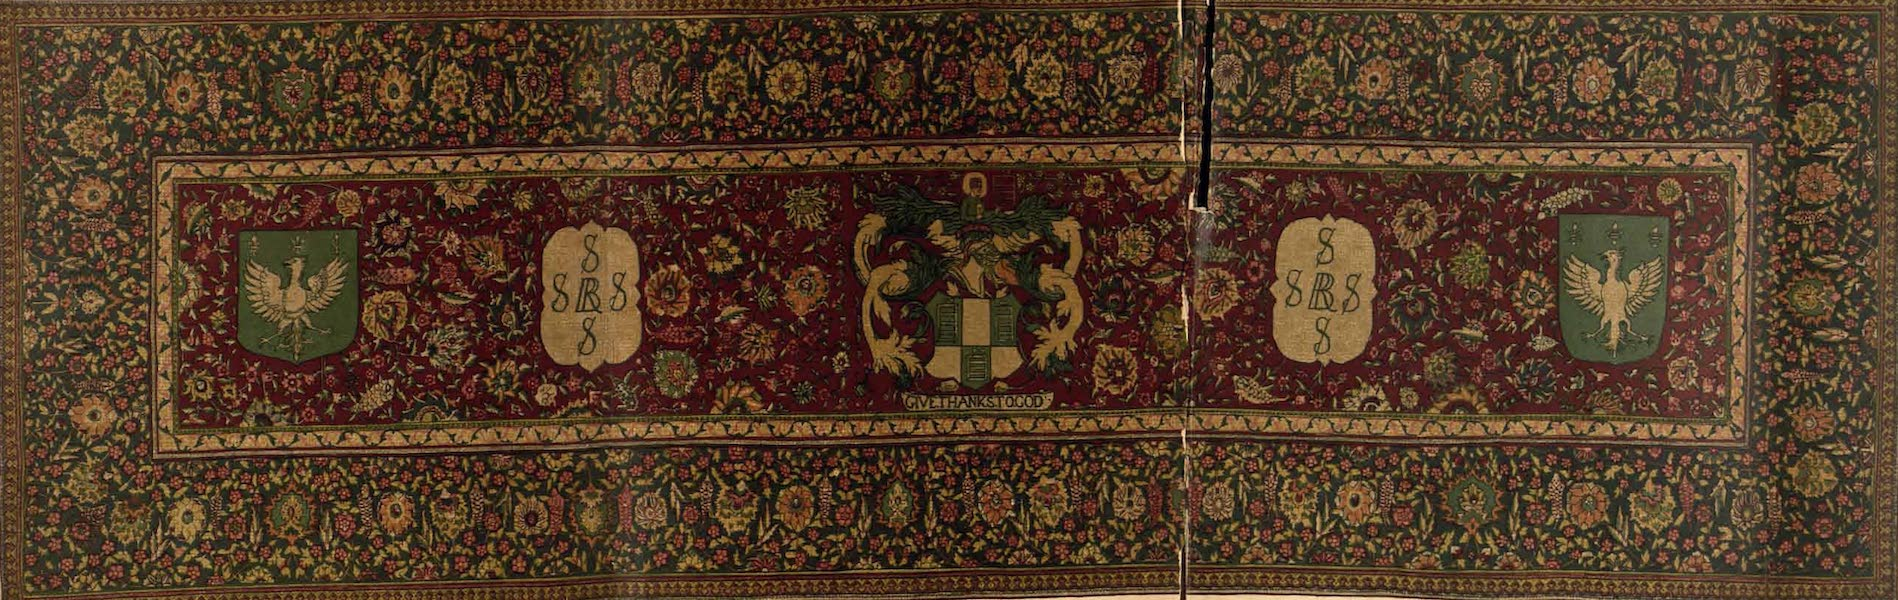 Relics of the Honourable British East India Company - The Girdler's Carpet (1909)